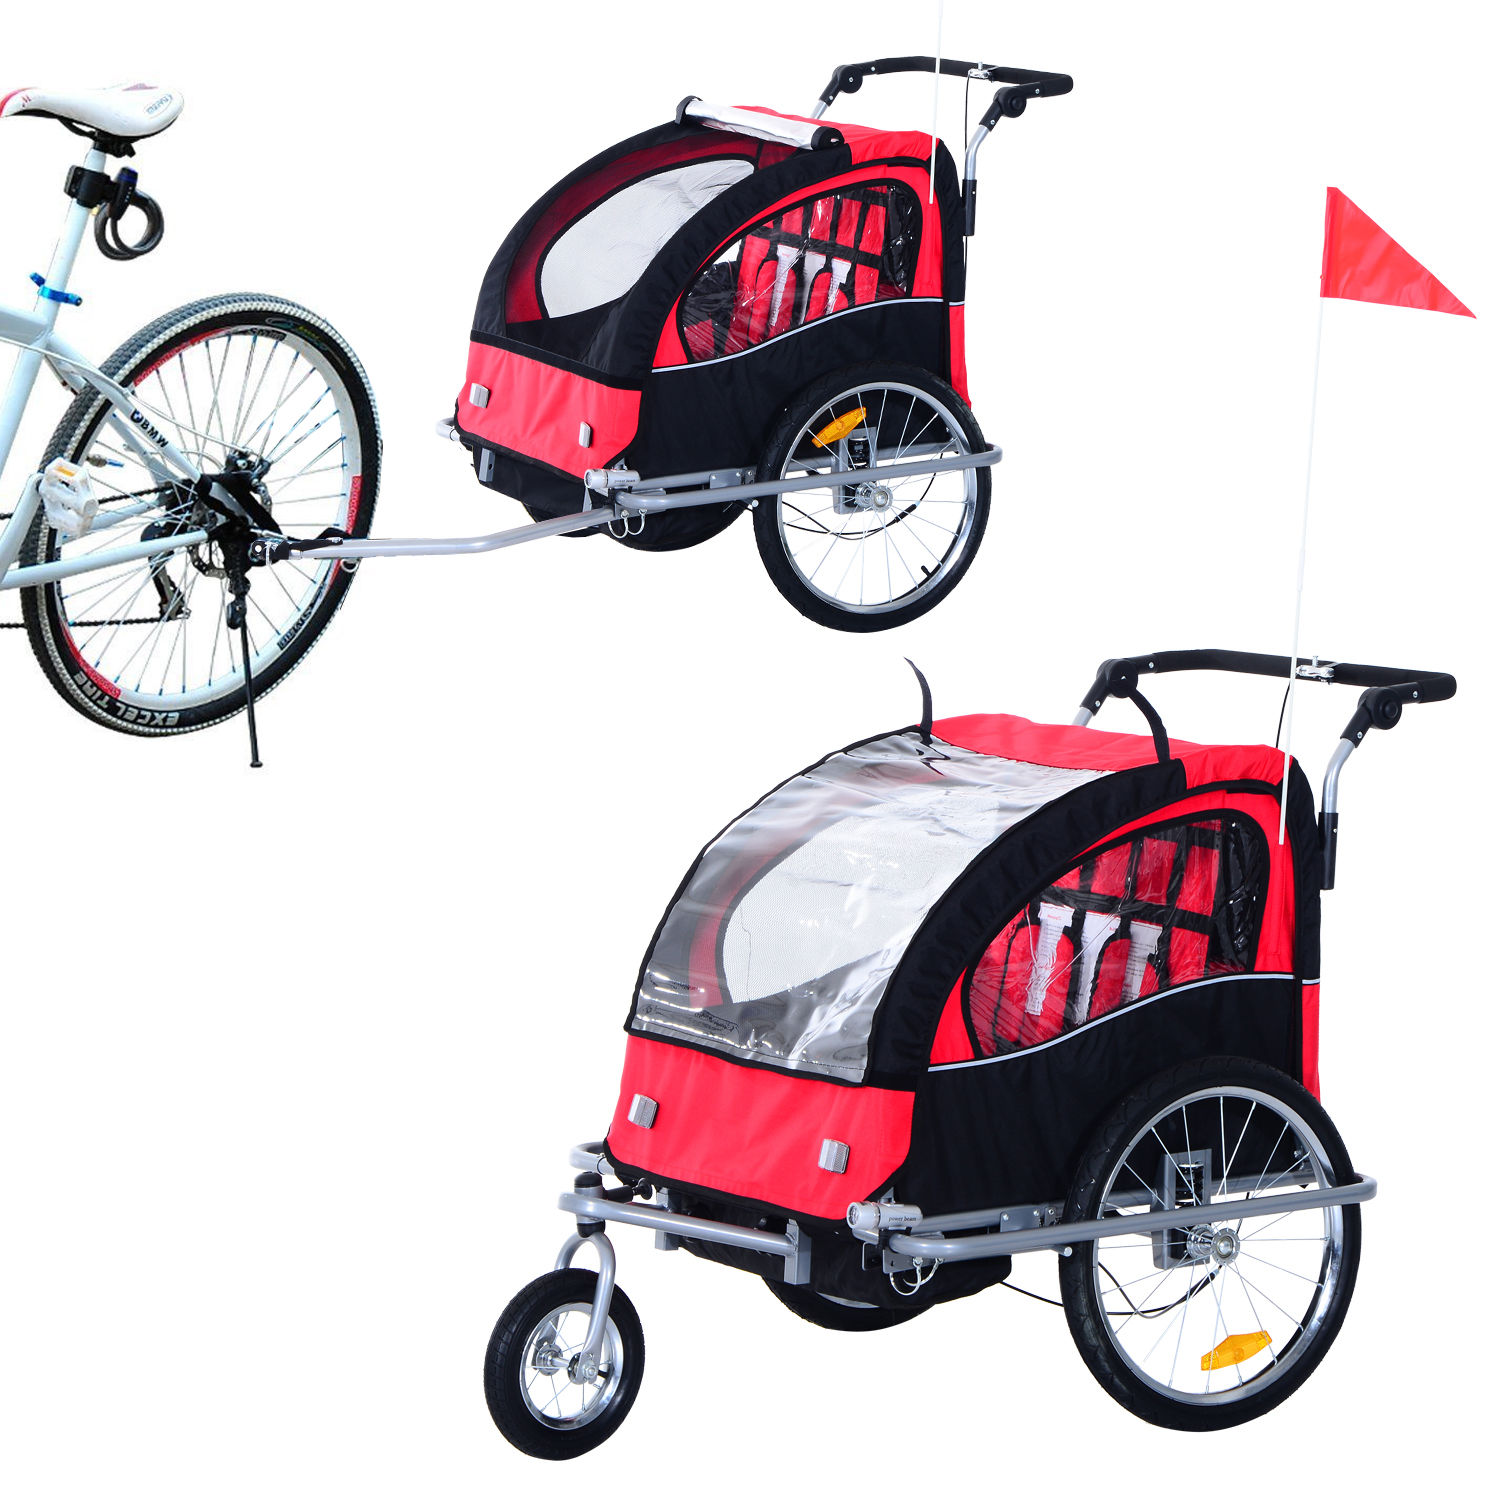 2-Seater-Child-Bike-Trailer-Kids-Carrier-Safety-Harness-Baby-Stroller-Jogger thumbnail 5